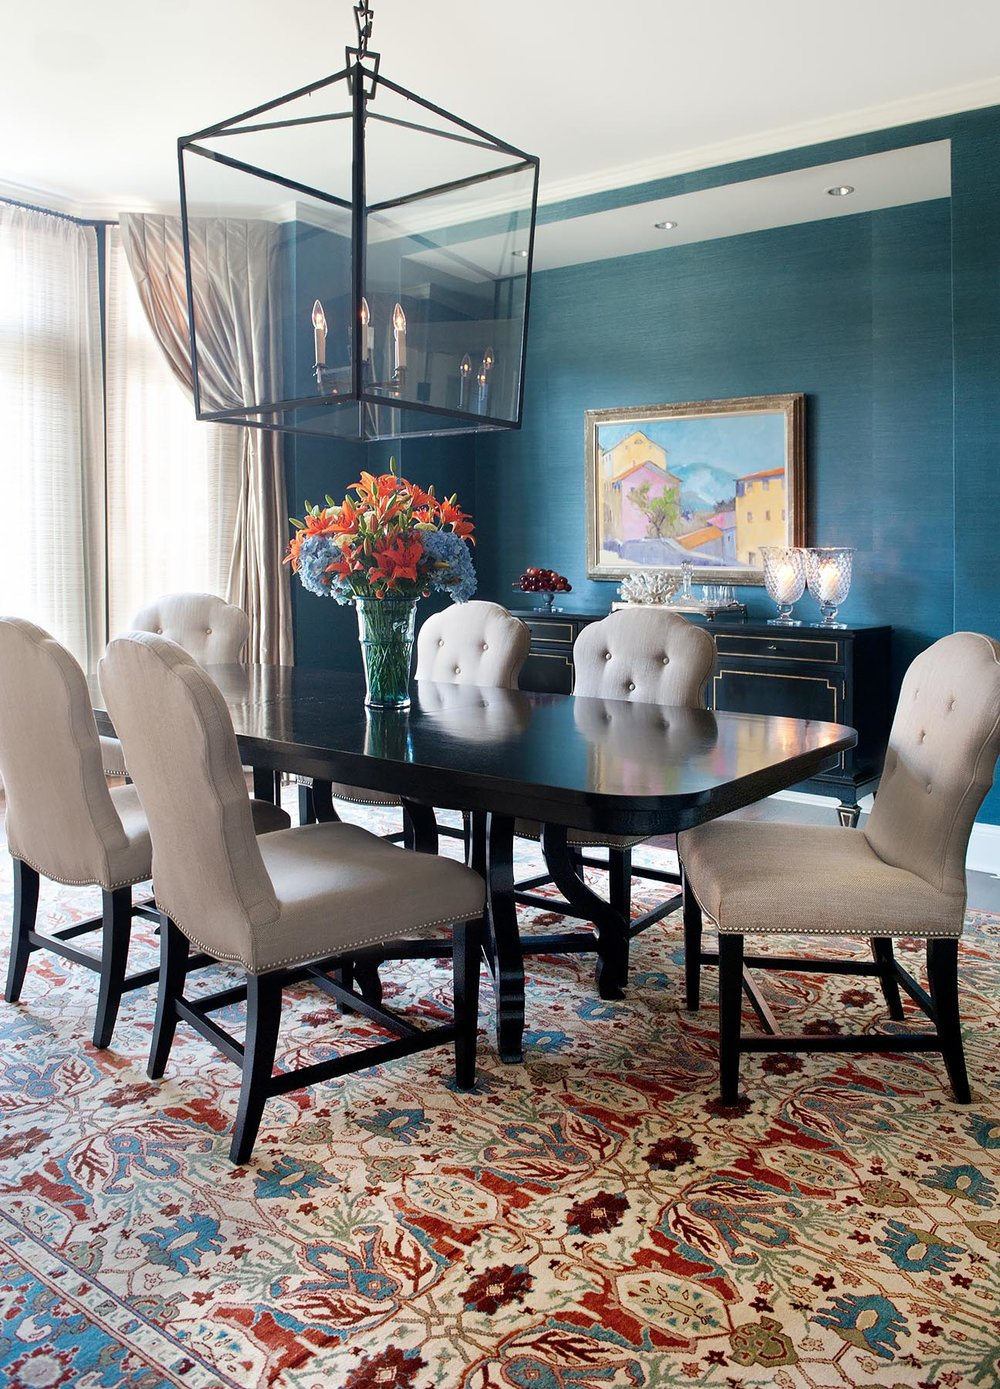 Peacock blue grasscloth wall in a classic dining room. Come see more interior design inspiration from Elizabeth Drake. Photo by Werner Straube. #interiordesign #classicdesign #traditionaldecor #housetour #elizabethdrake